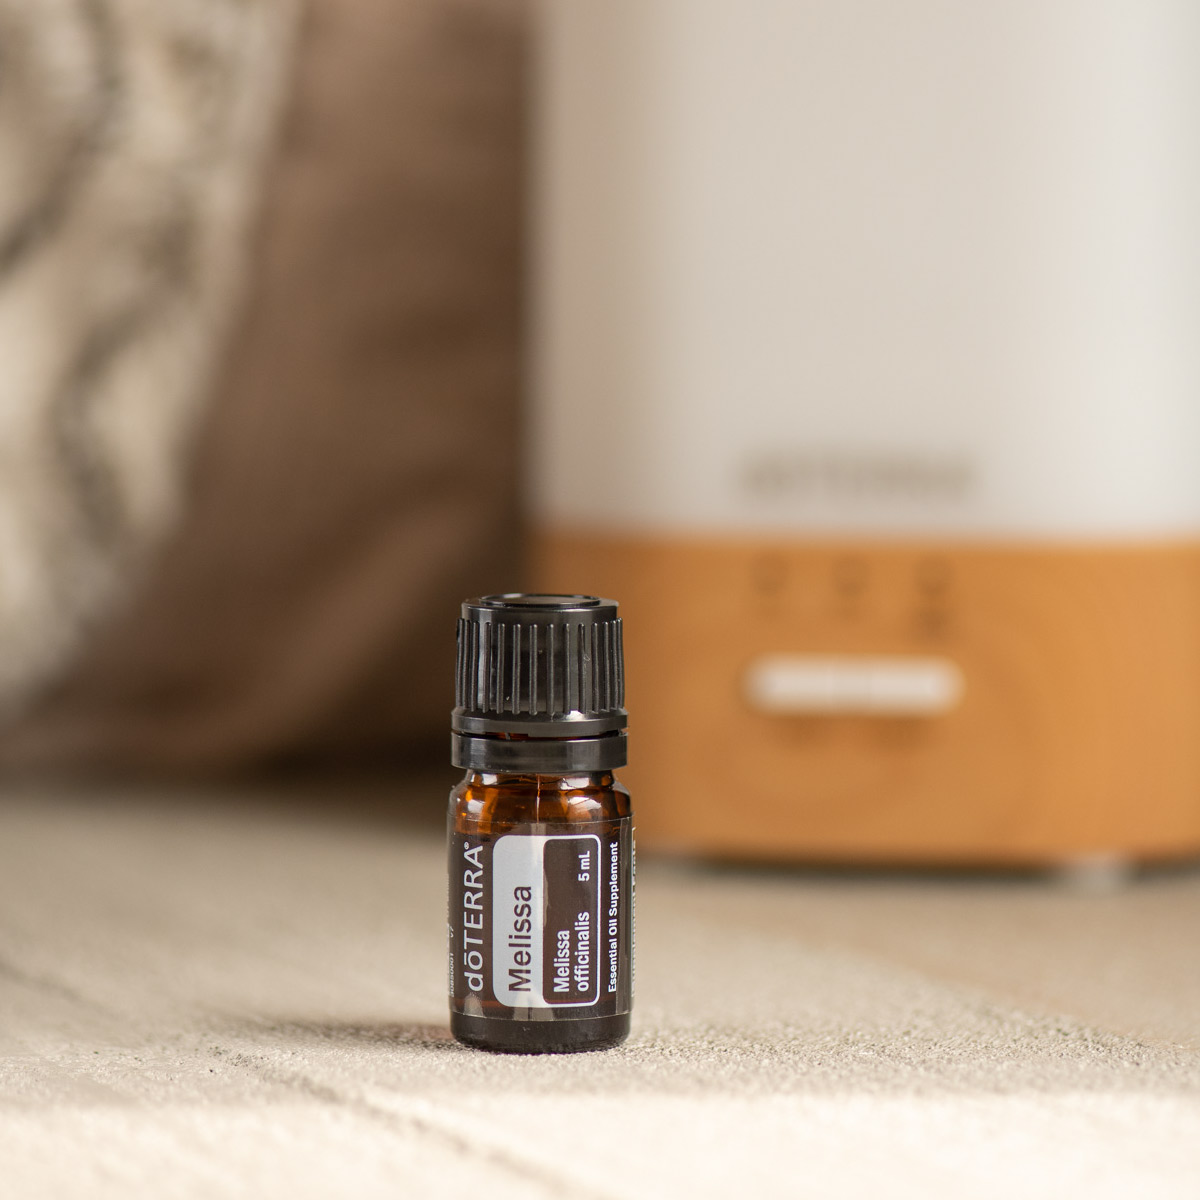 : Bottle of Melissa oil next to doTERRA diffuser. What does Melissa oil smell like? Melissa essential oil has a sweet, fresh, citrus-like fragrance.